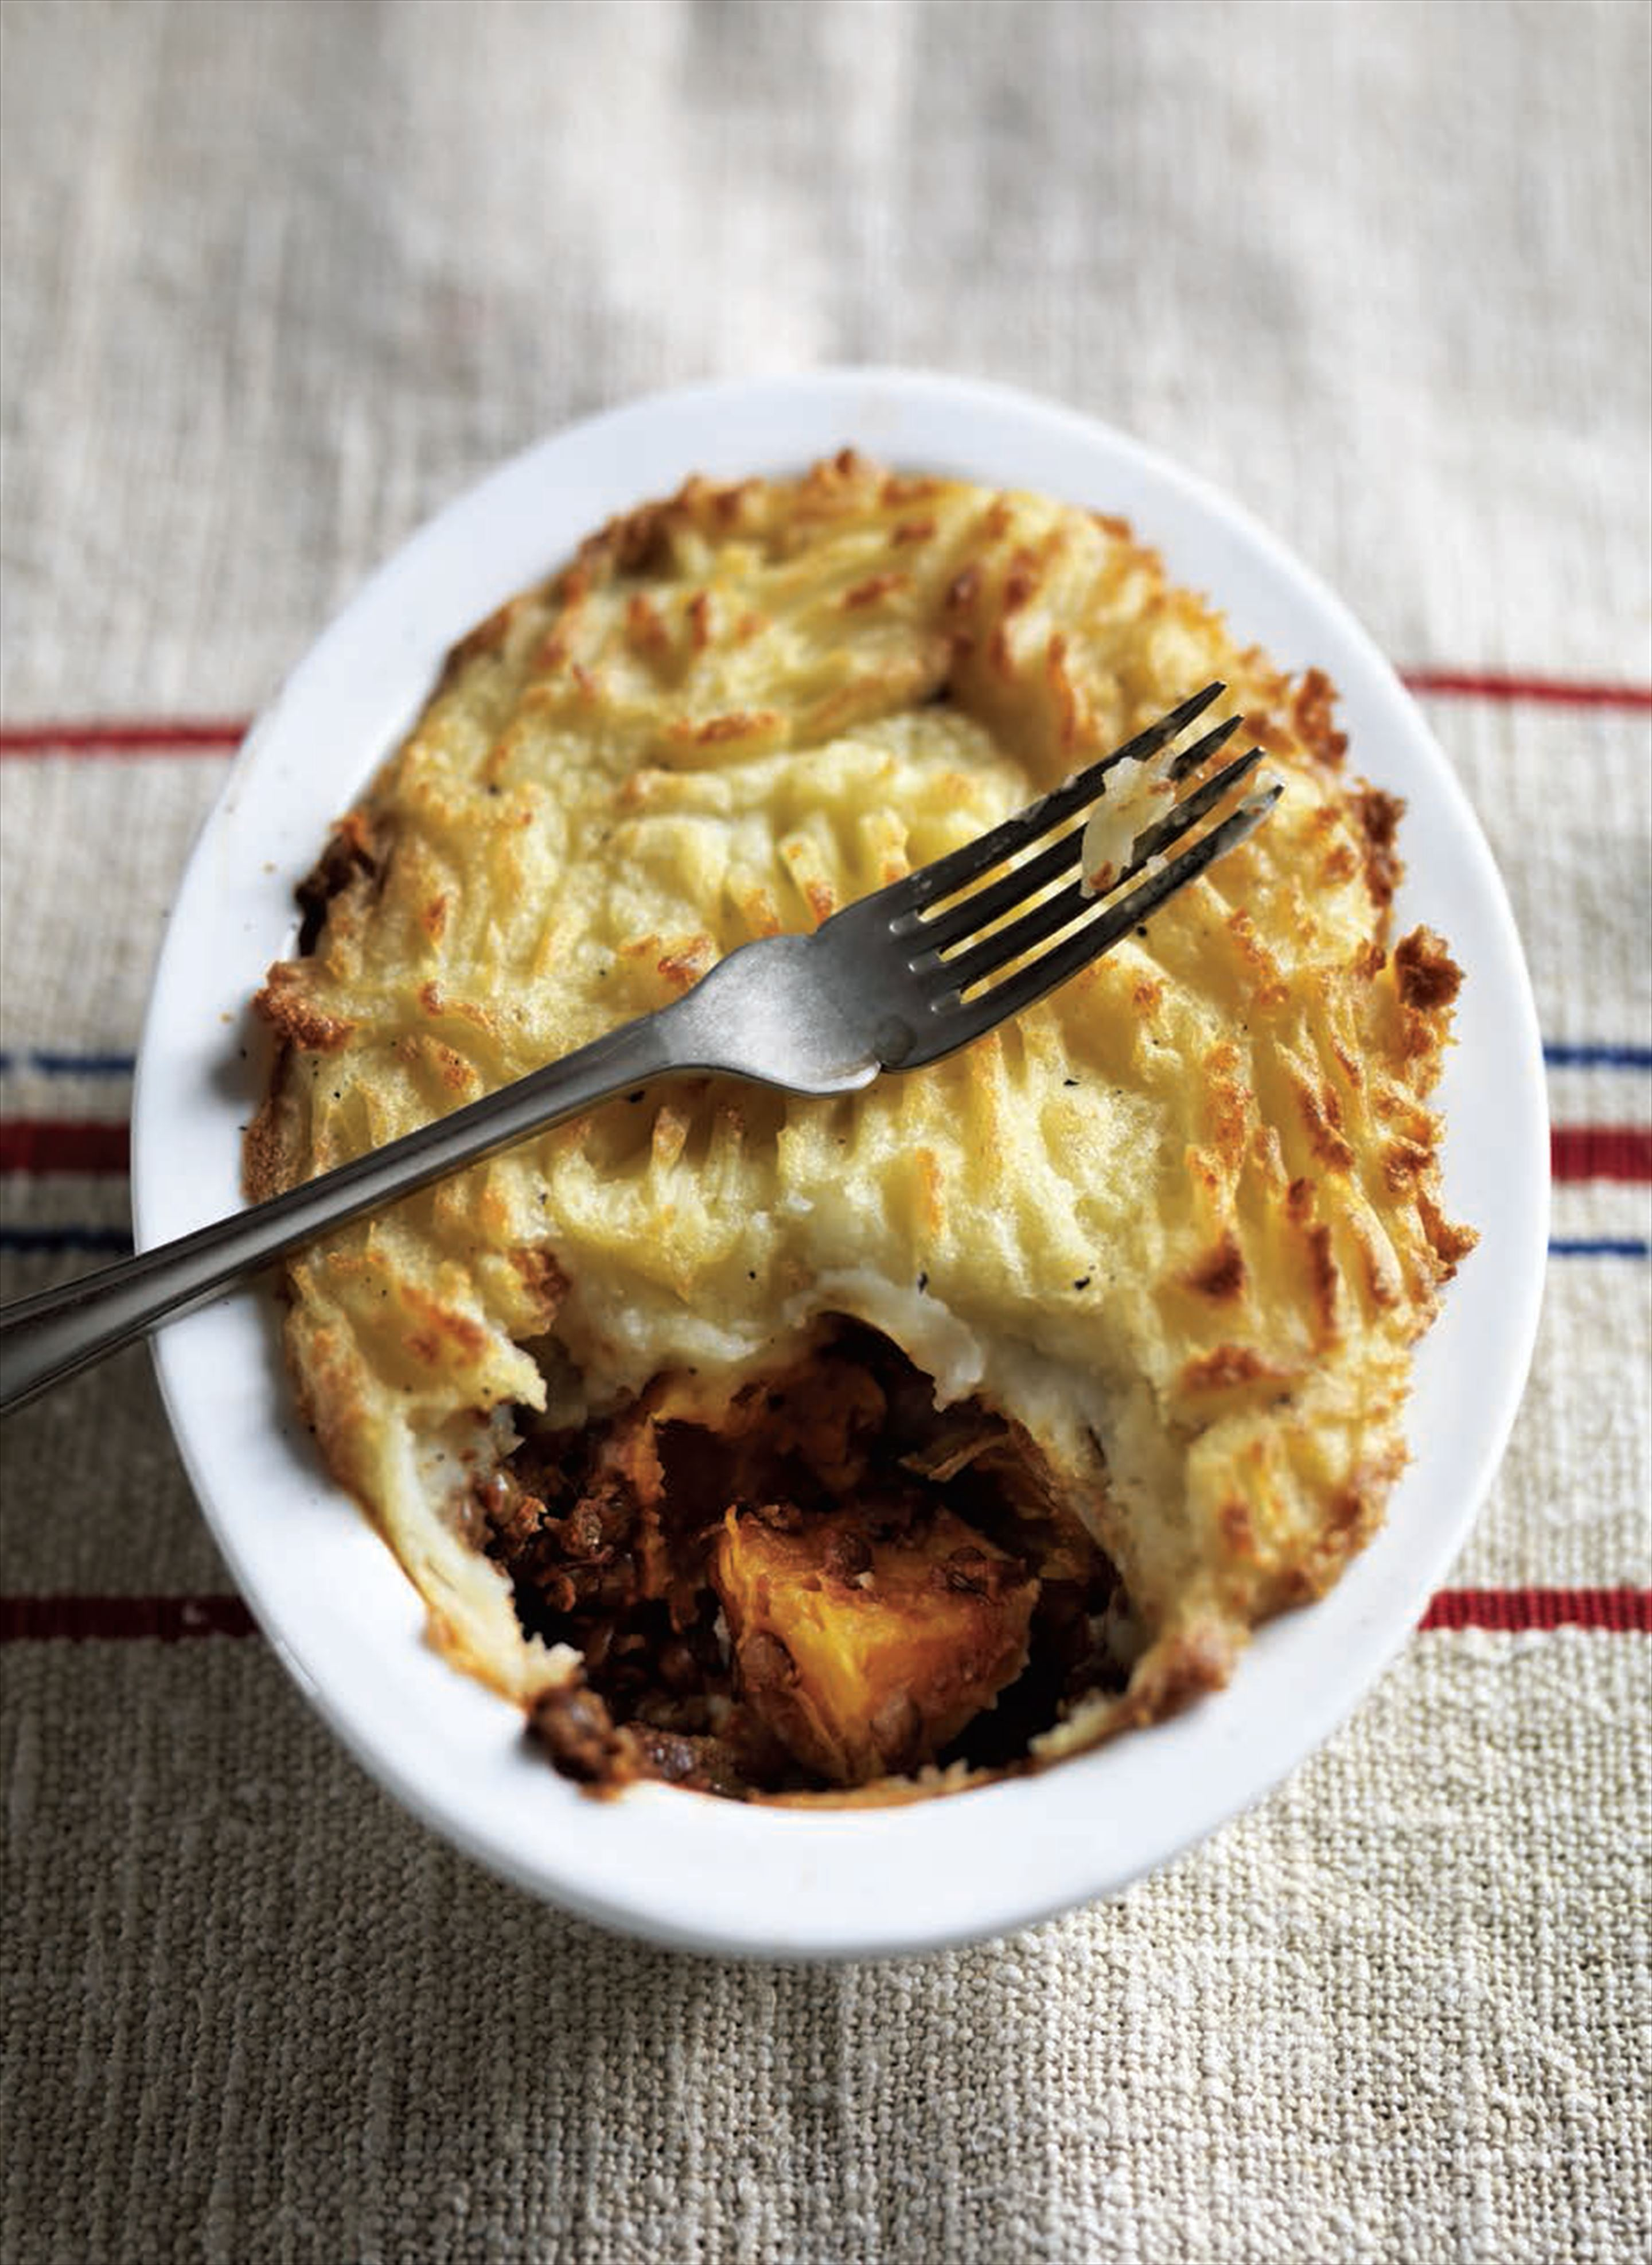 Puy lentil and roast butternut squash 'shepherd's pies'